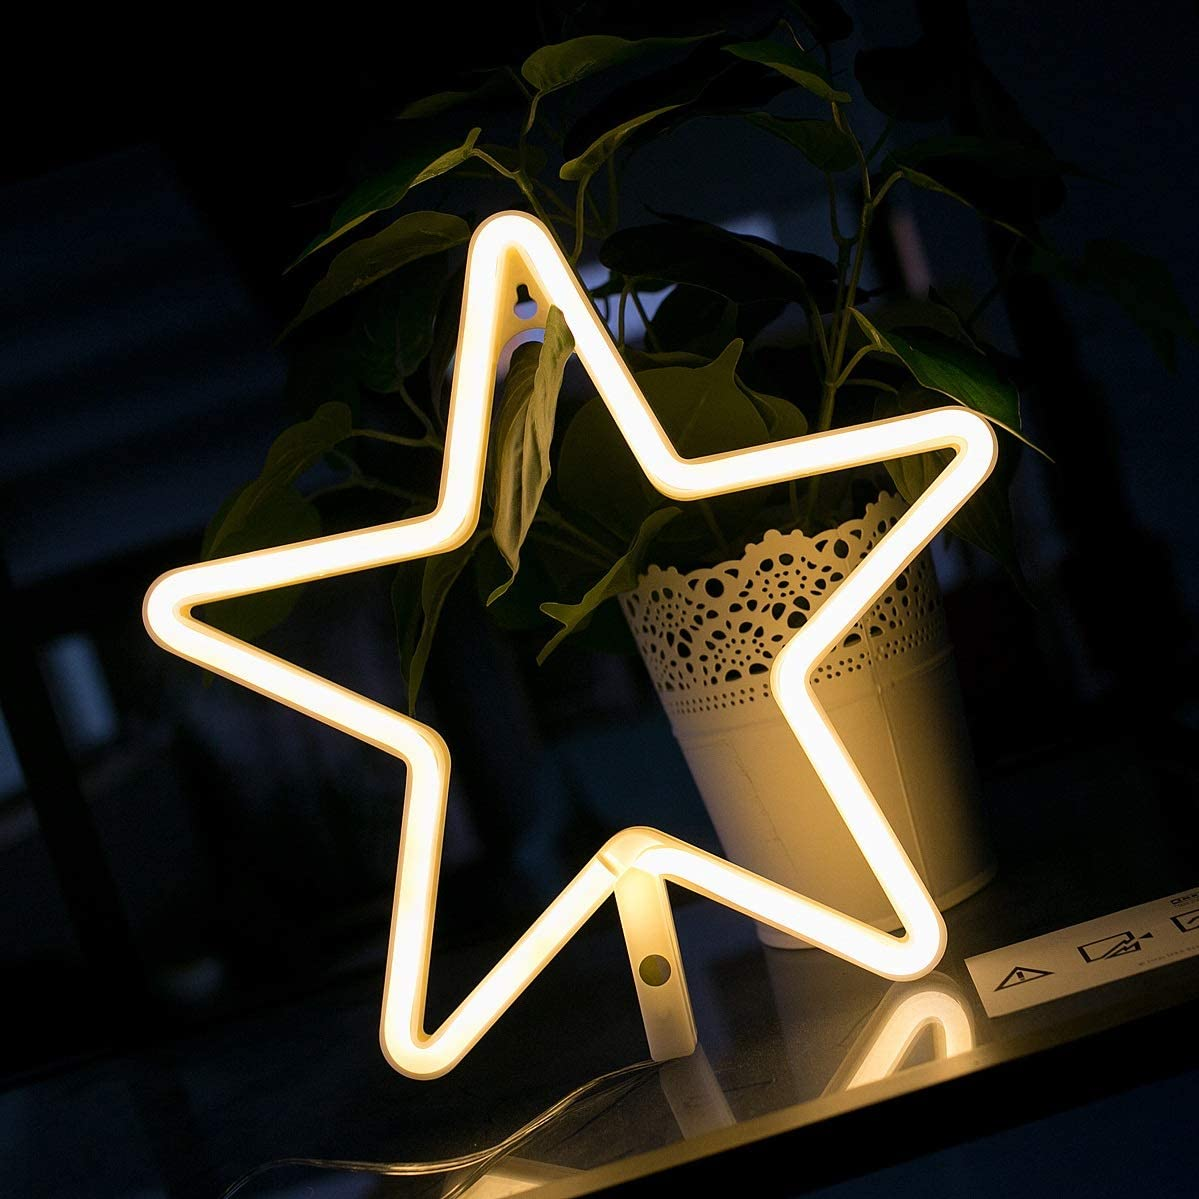 Star Neon Signs LED Neon Light Sign Battery or USB Operated for Christmas,Birthday Party, Living Room, Girls,Kids Room(Star)